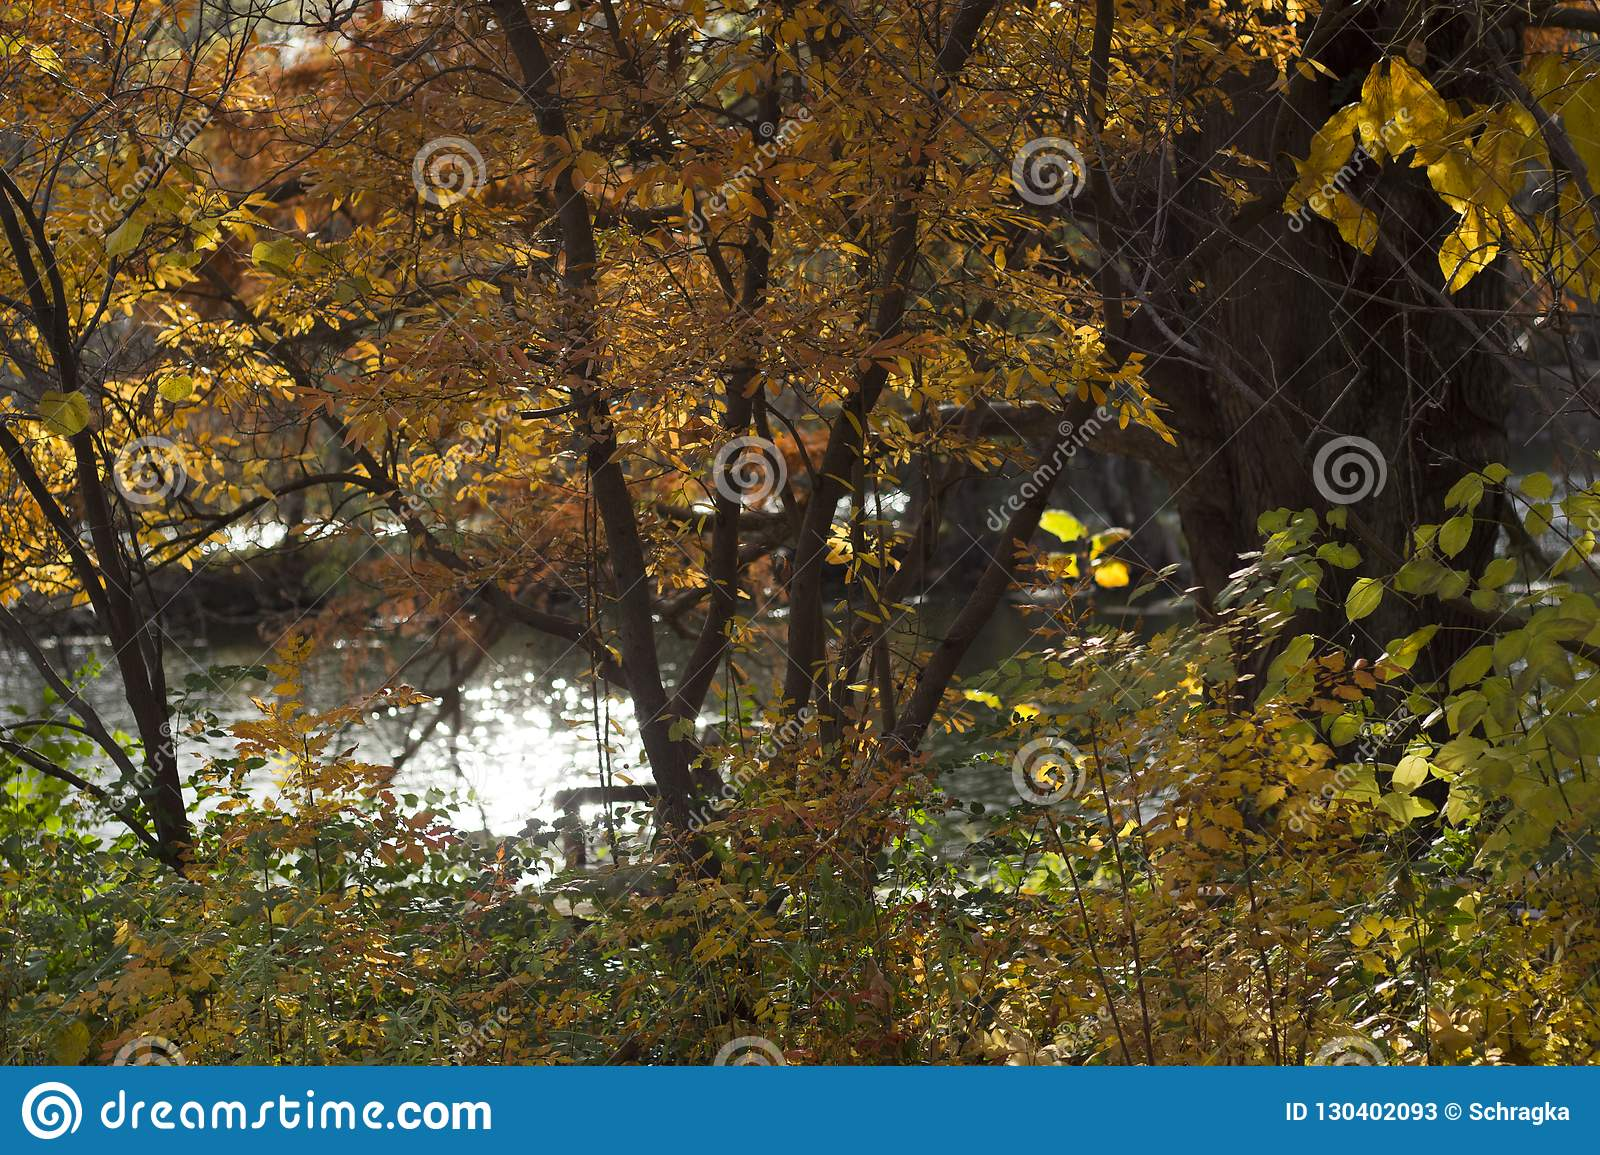 Horizontal photo of fall orange trees & bushes in front of water